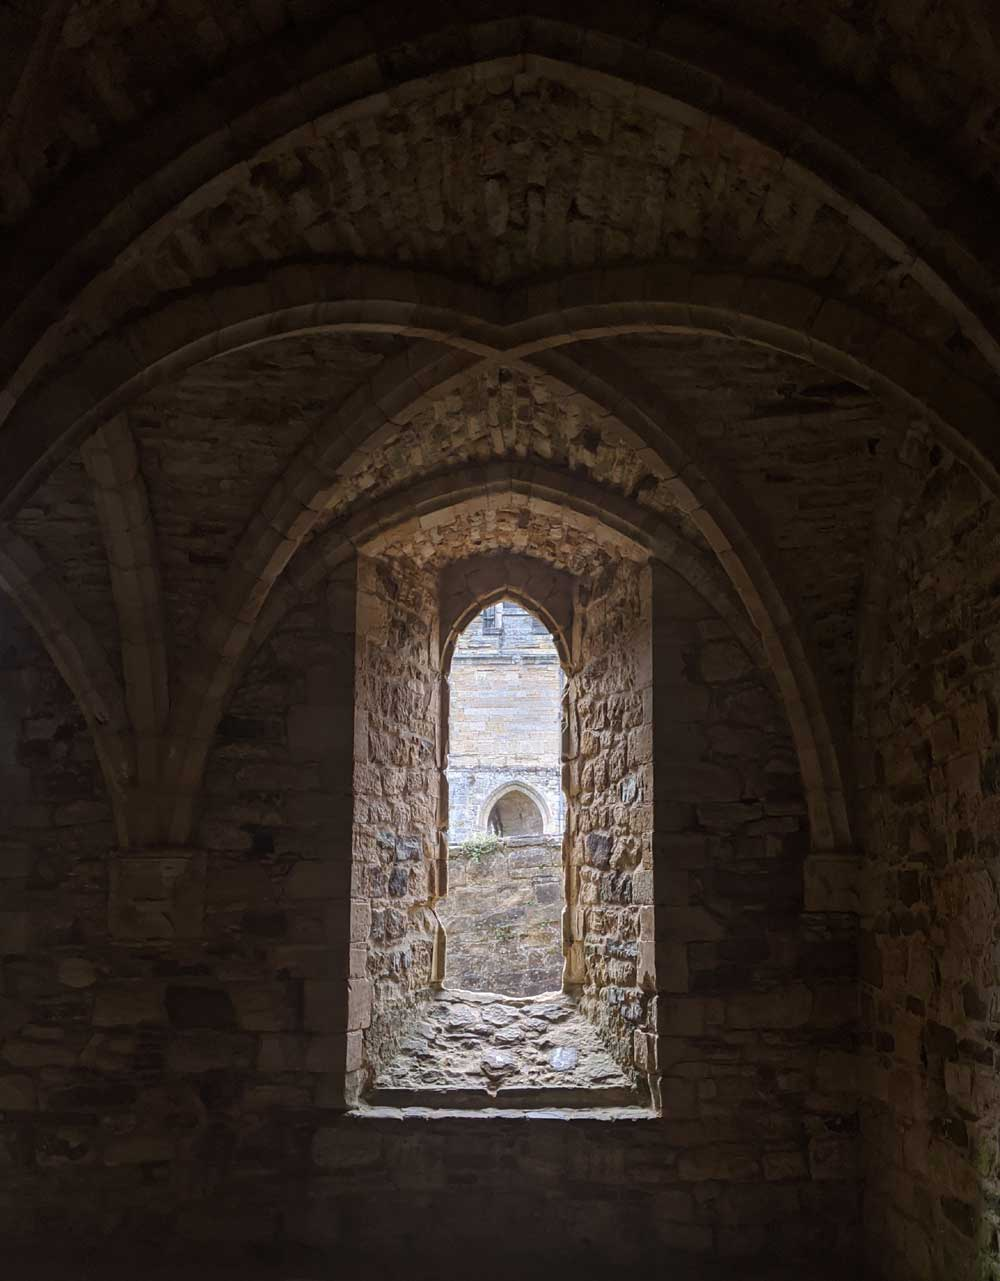 looking through stone window with Arched vaulted ceiling - Battle Abbey, Battle